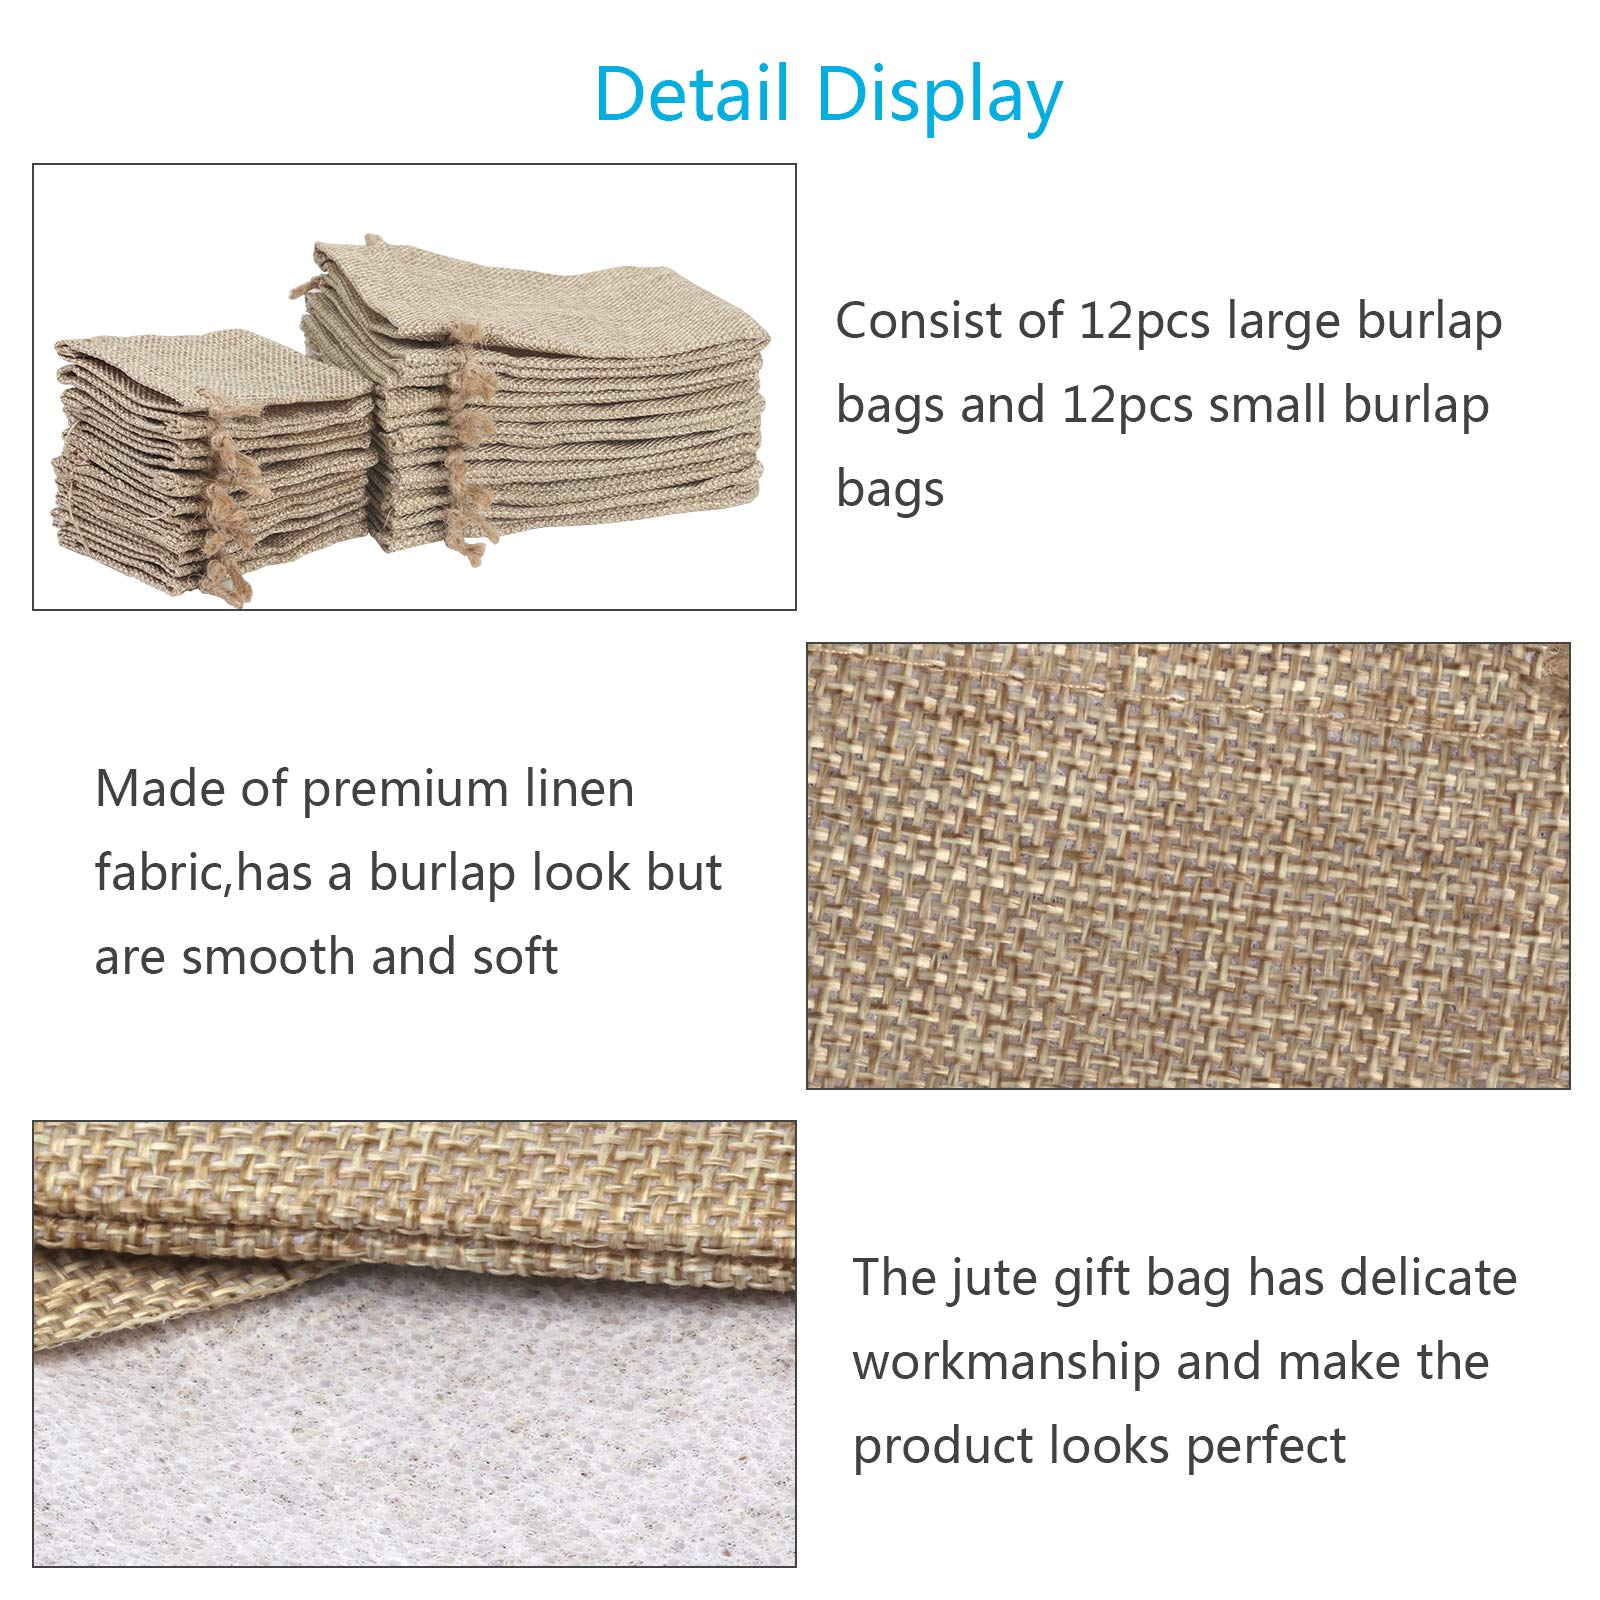 KATOOM 24 Pcs Small Burlap Bags Jute Gift Bags Vintage Linen Sack Resusable Burlap Pouches with Drawstrings for Wedding Party Christmas Festival Decoration Home DIY Craft